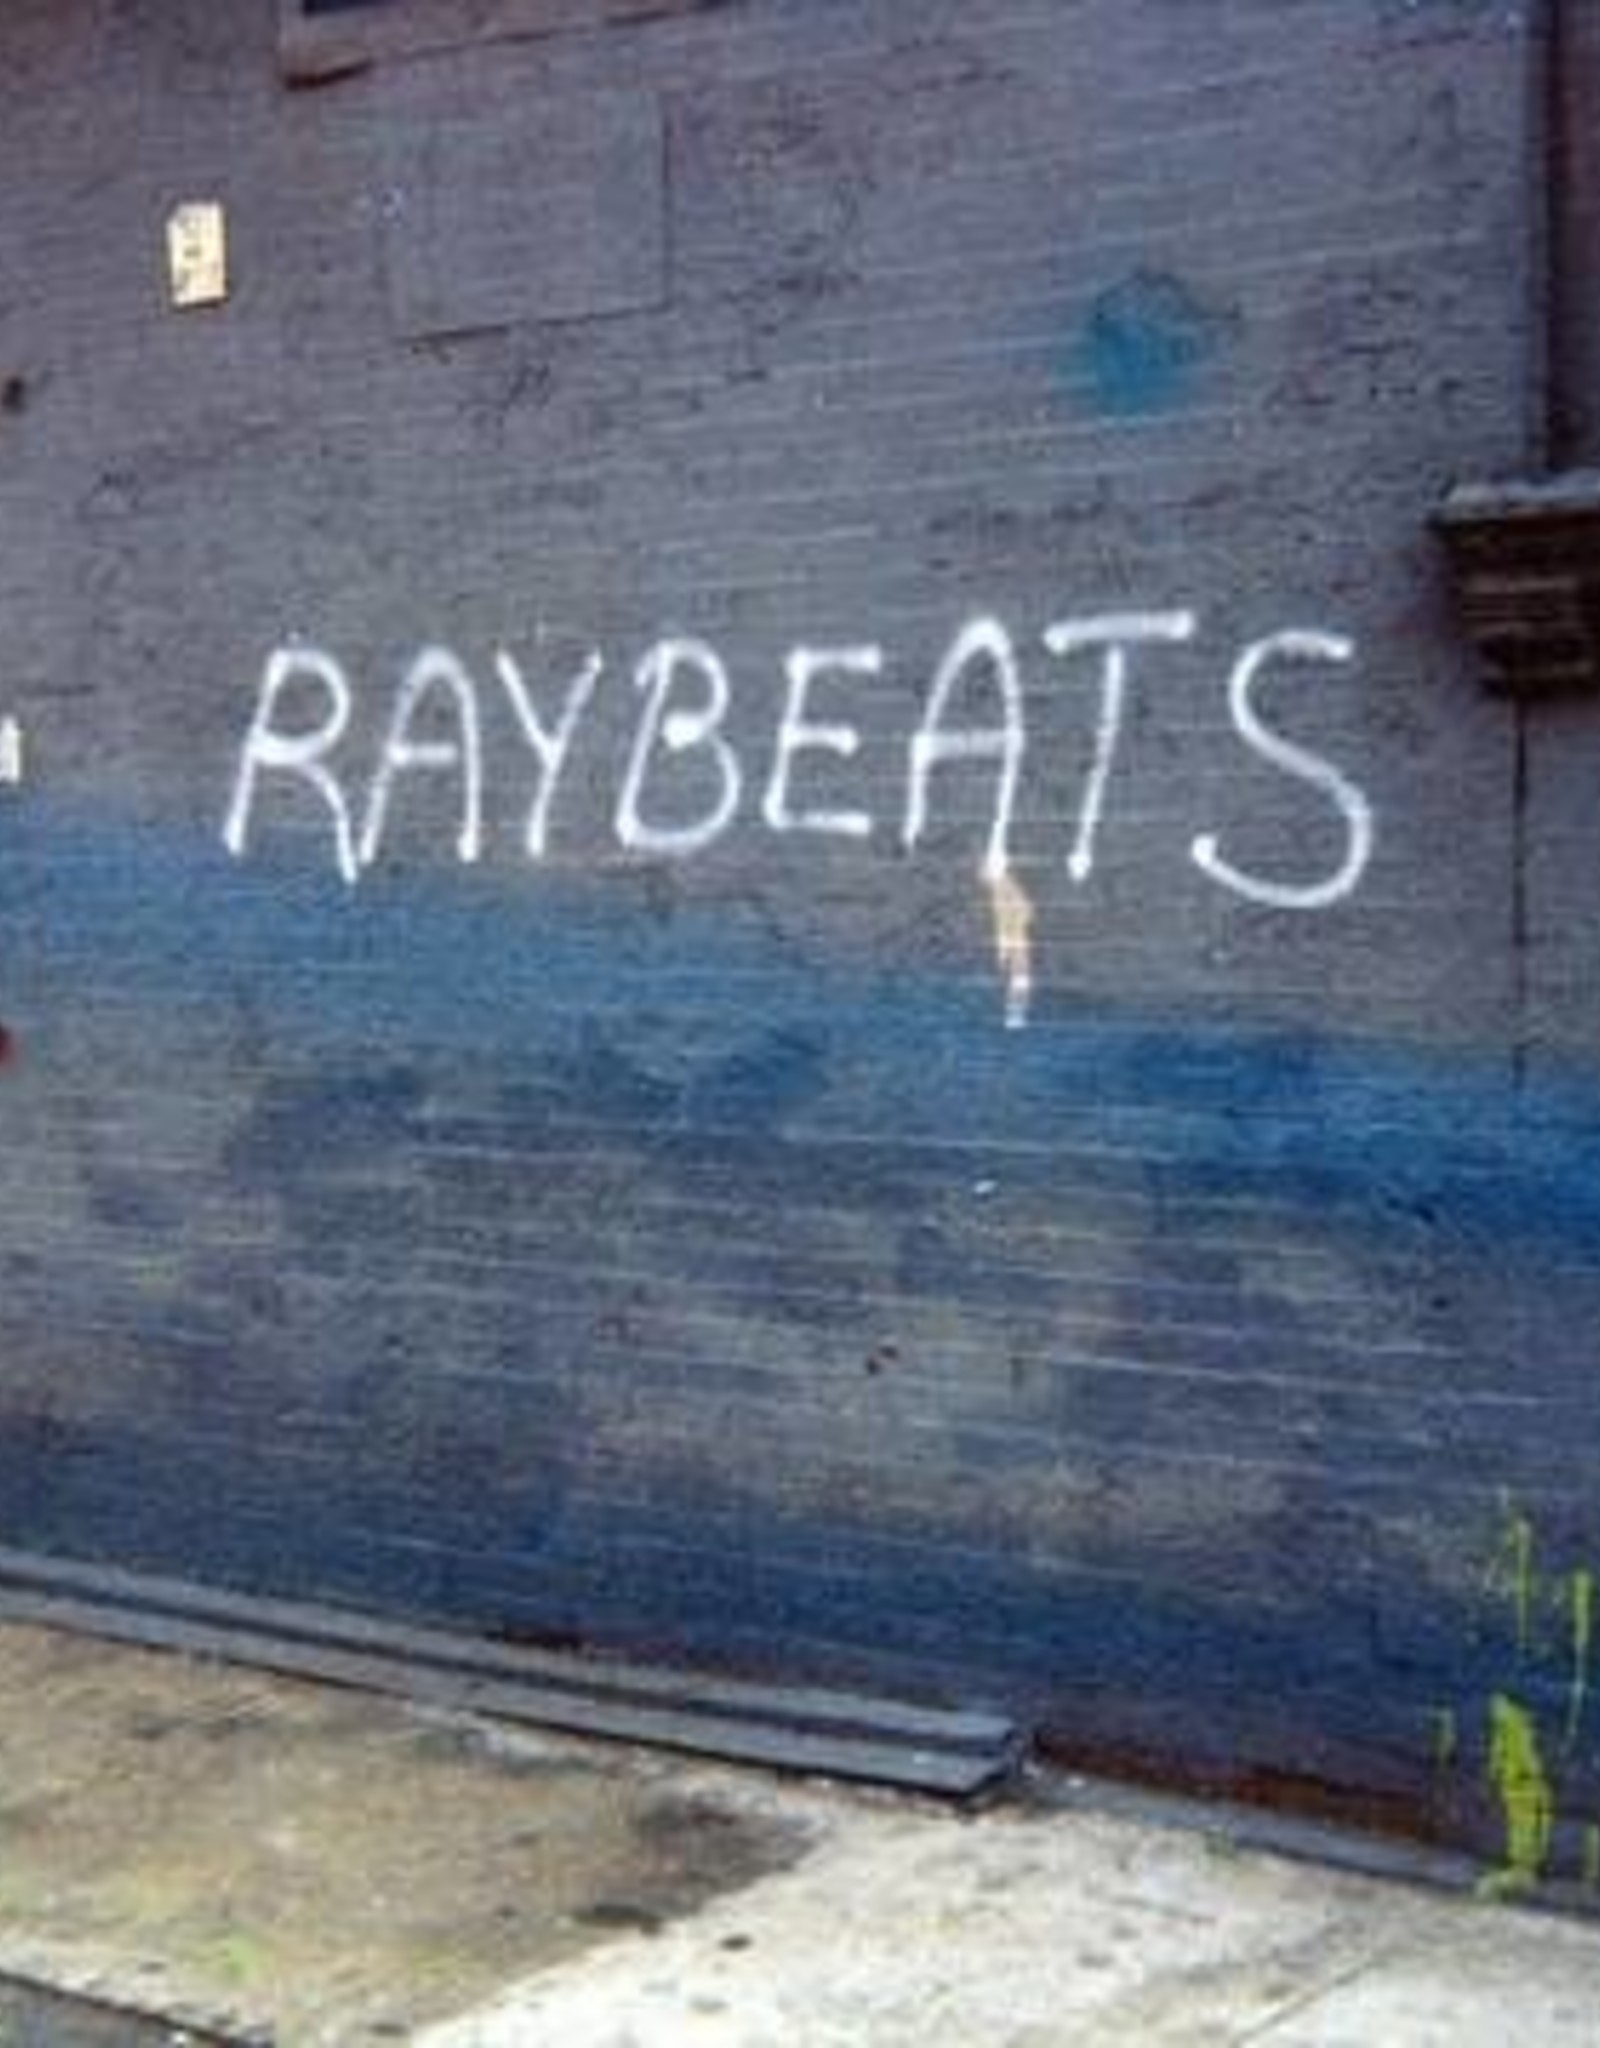 Raybeats - Lost Philip Glass Sessions (Dl Card) (RSD 6/21)